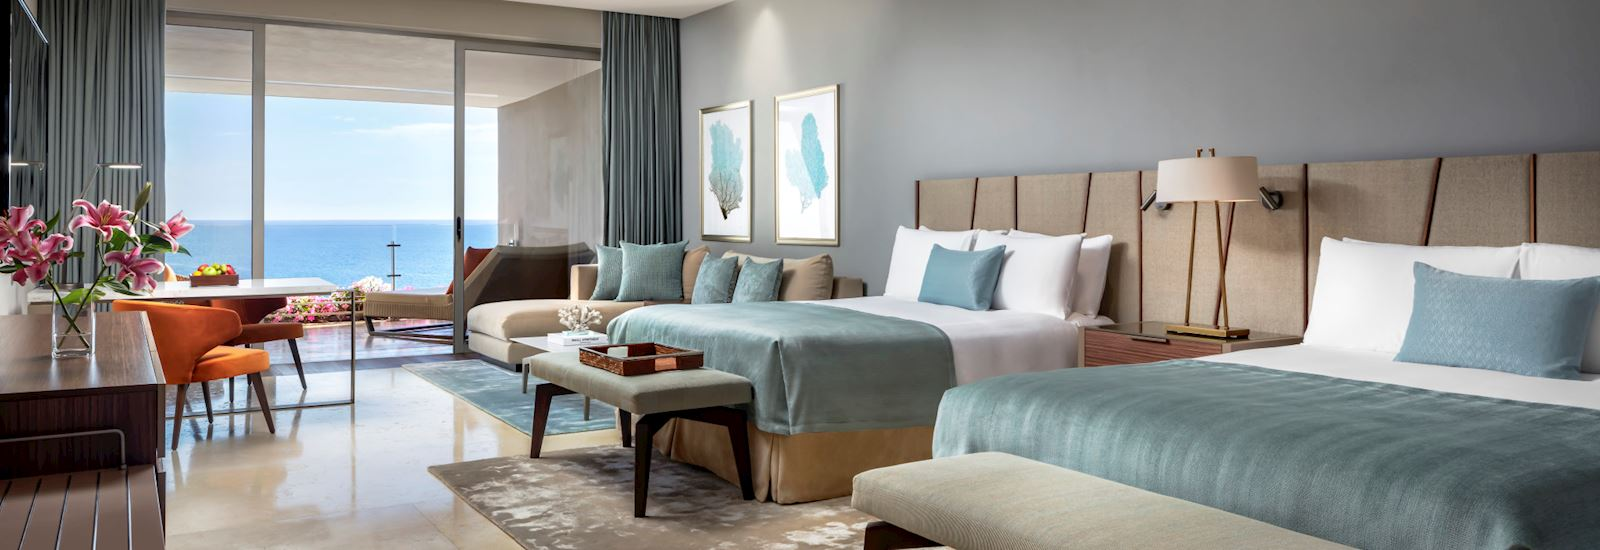 Grand Velas Los Cabos offering Two-Bedroom Family Suite